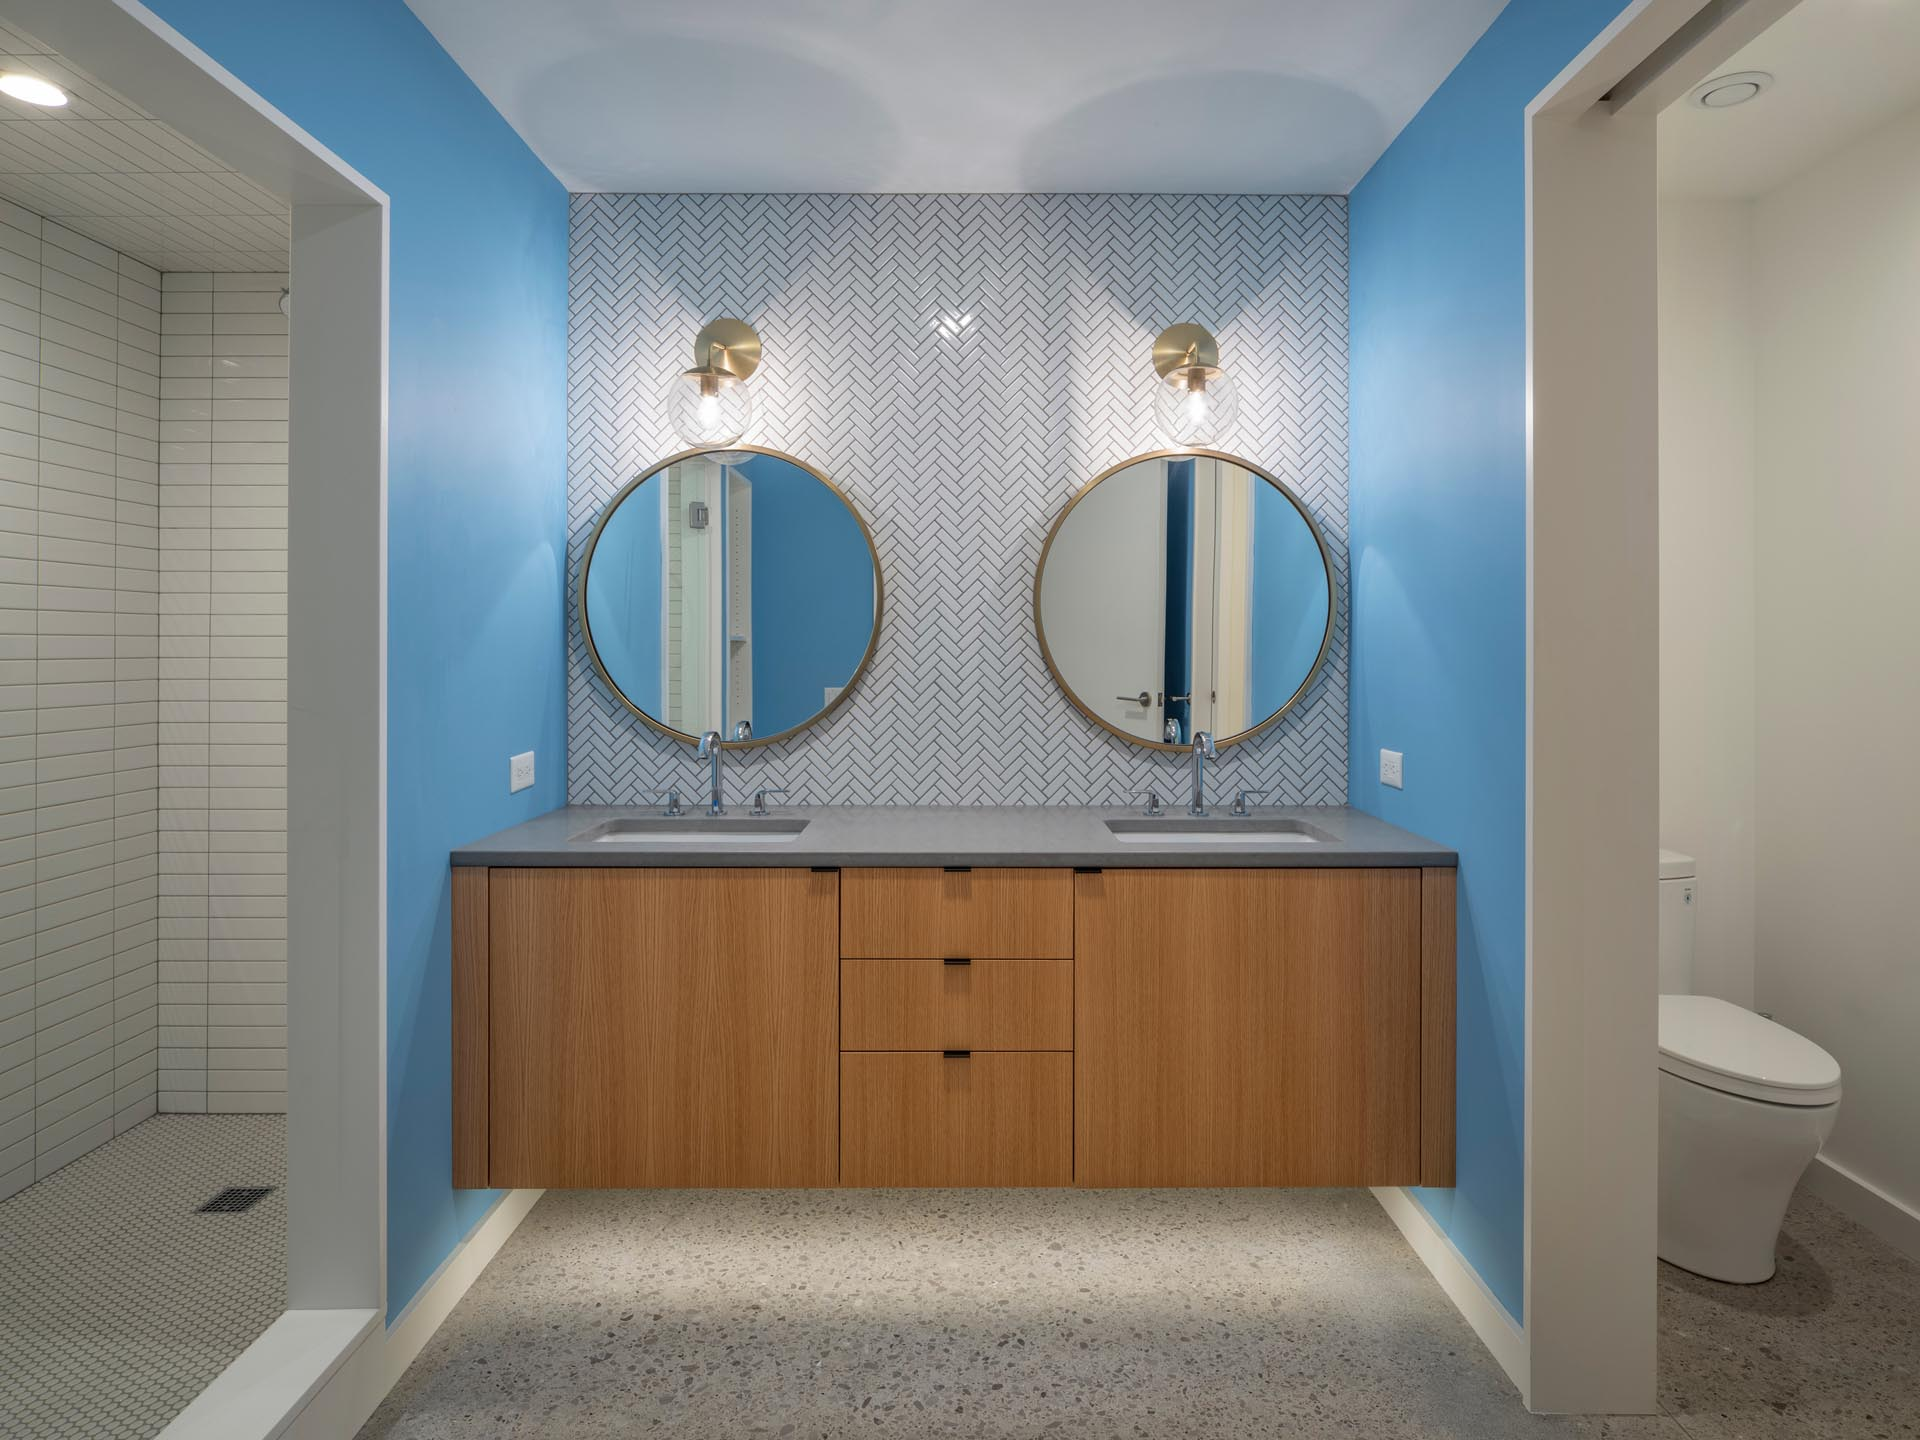 A modern bathroom with bright blue walls that add a pop of color, white a floating wood vanity has lighting underneath it, and above, there are two round mirrors with bronze frames that match the sconces.